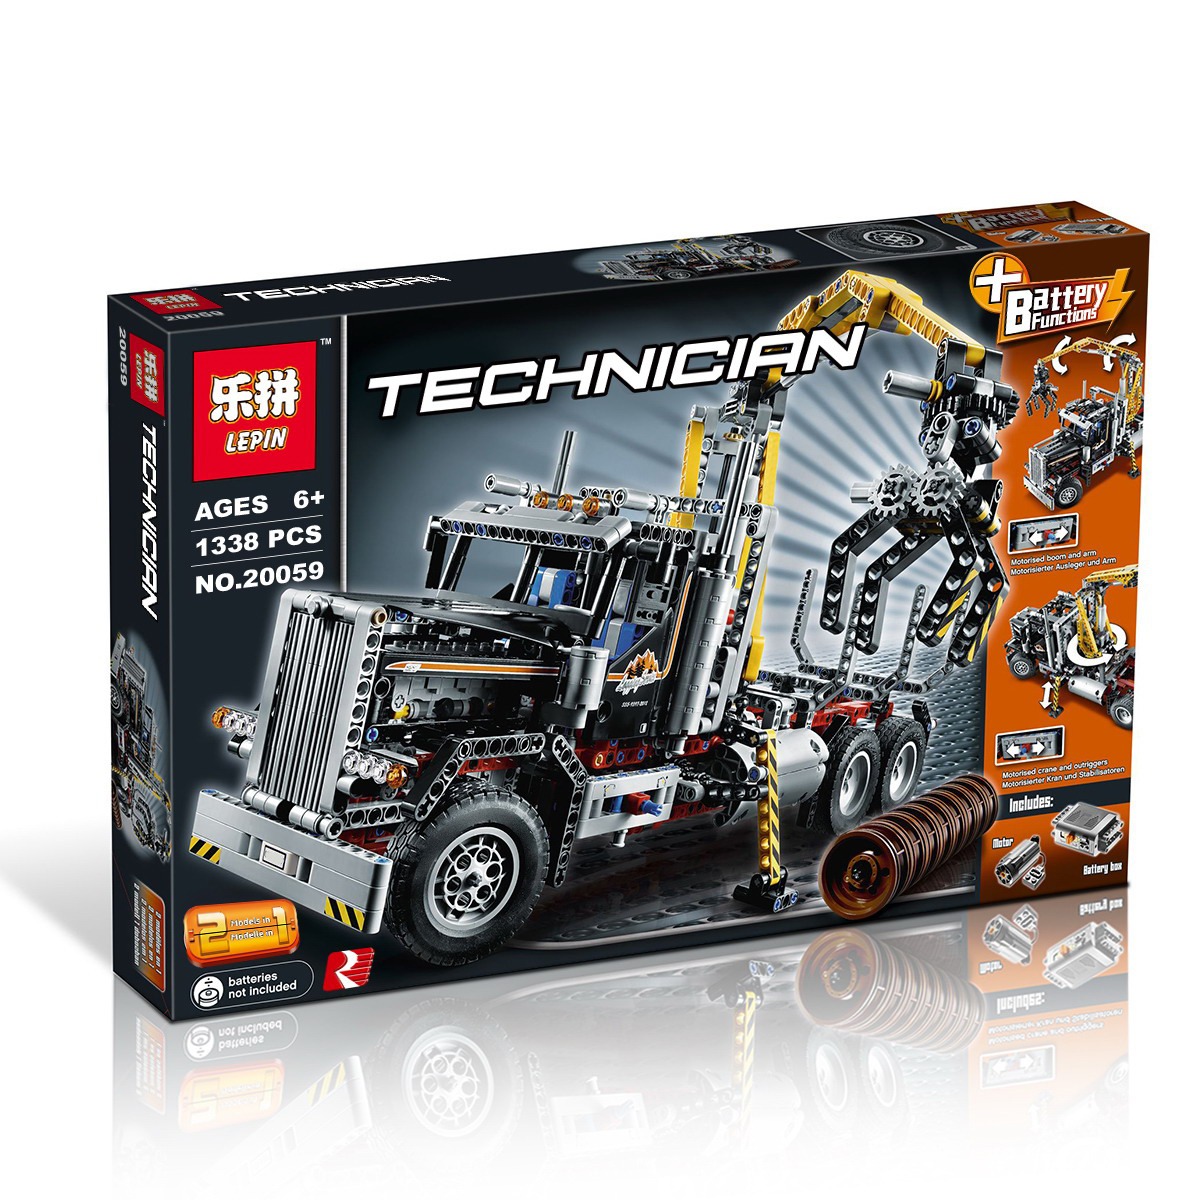 1338+ PCS Building Bricks, LP 20059 Building Blocks Technic 9397 LOGGING TRUCK.